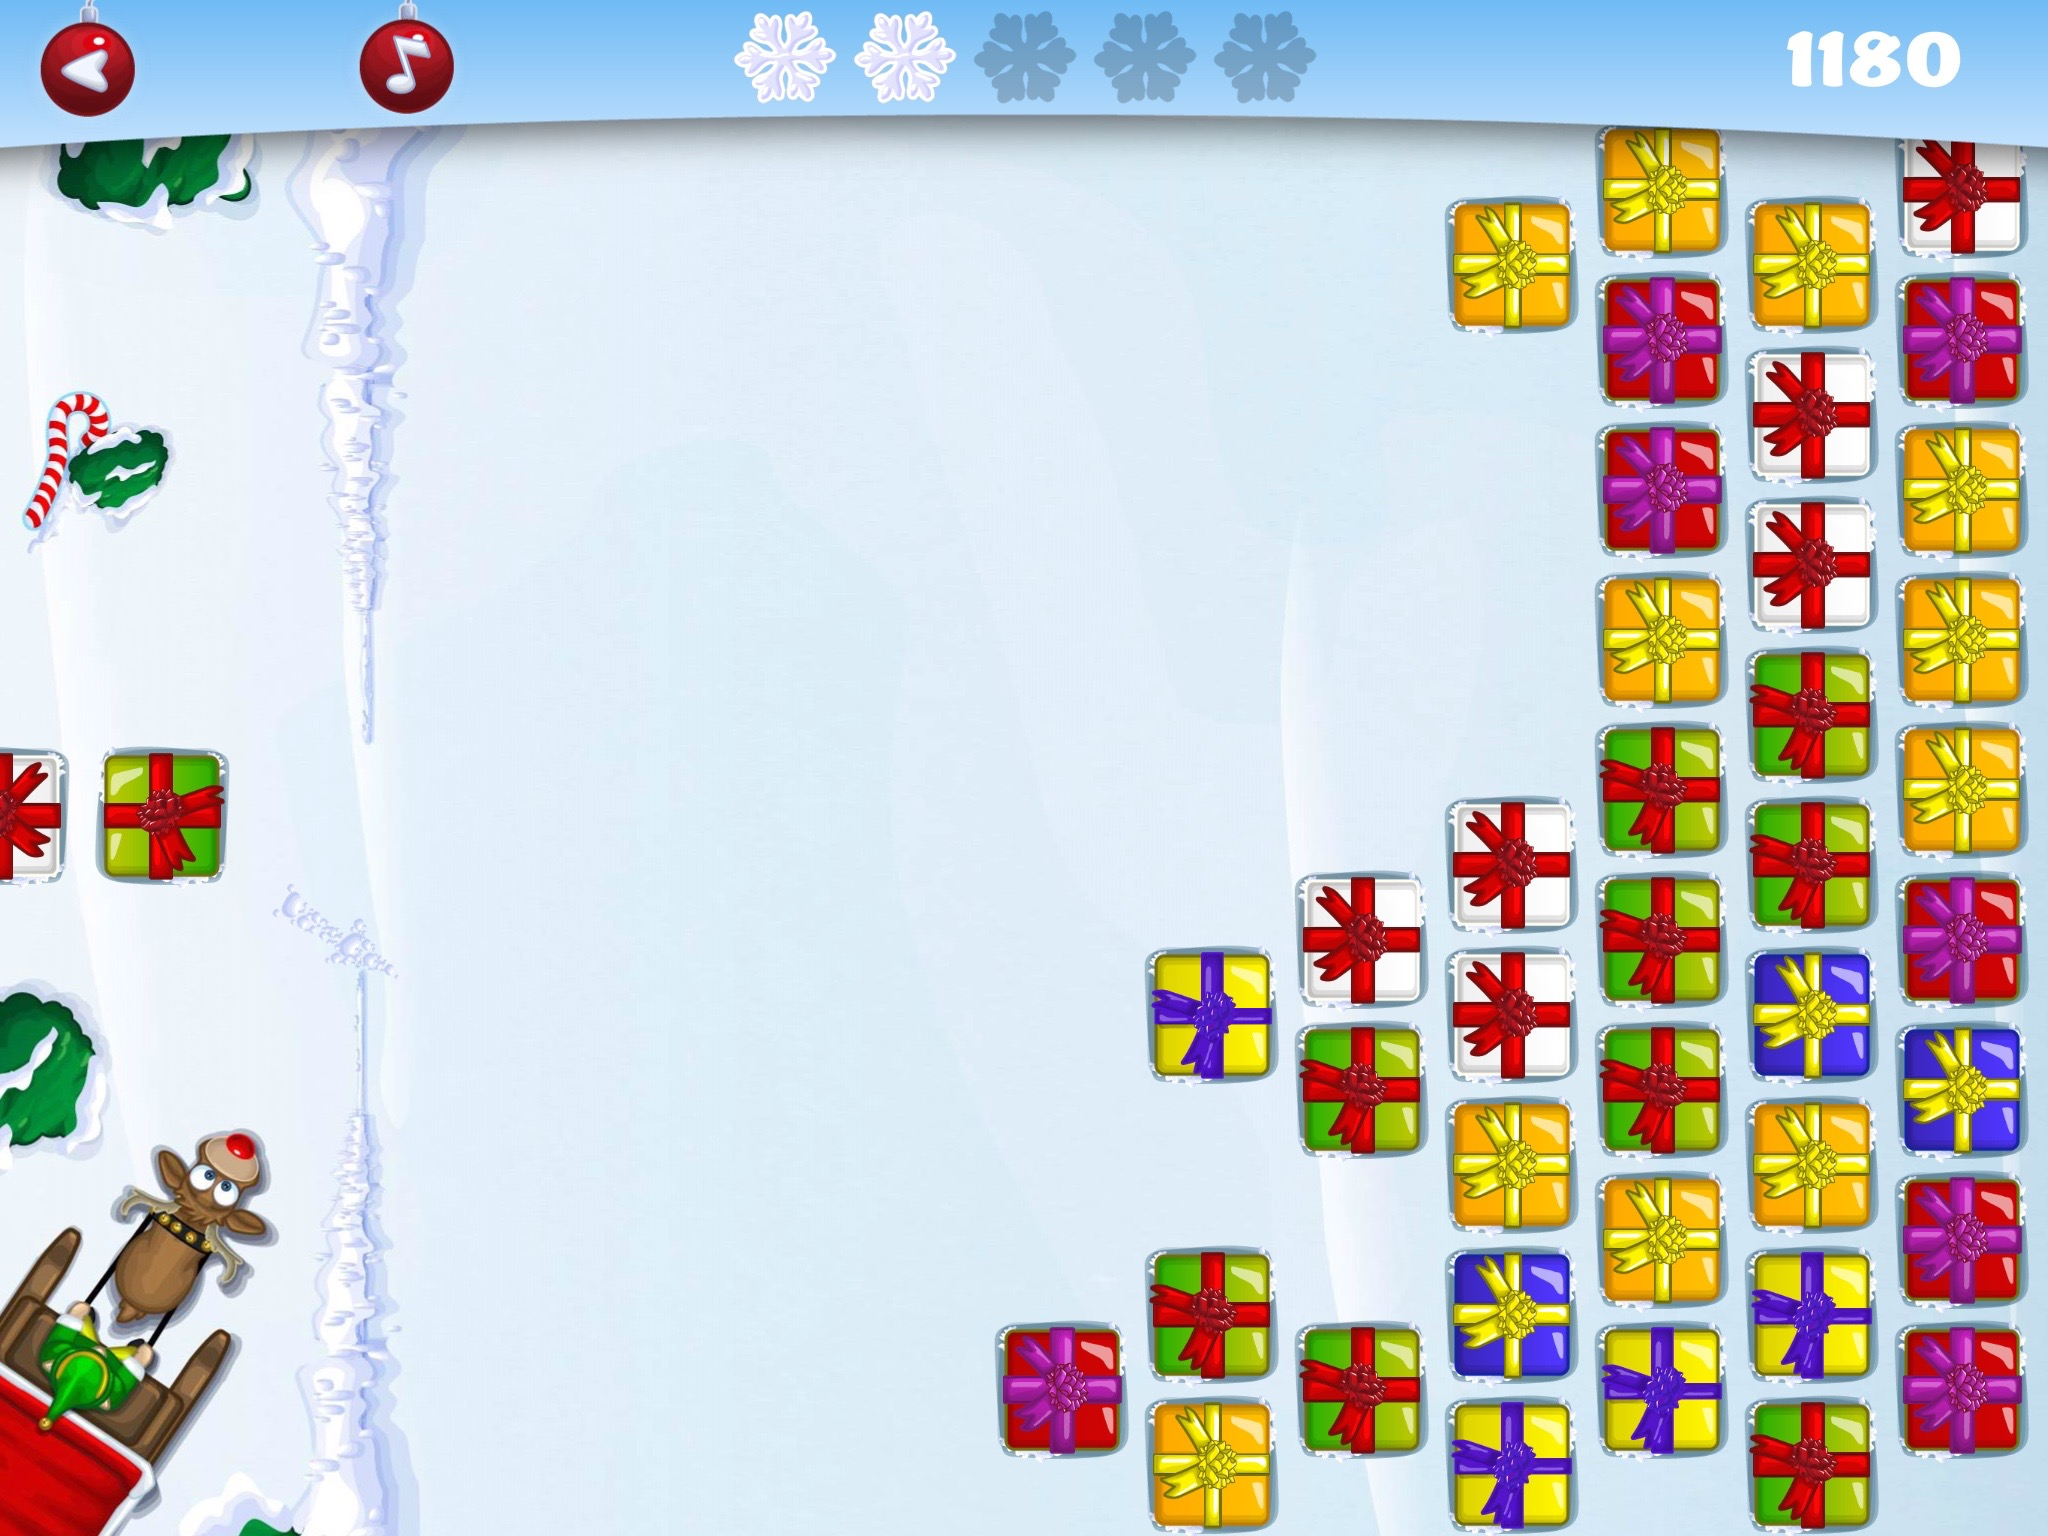 Feiertag_2_App_For_Kinder_Jan_Essig_XMAS_Games_4